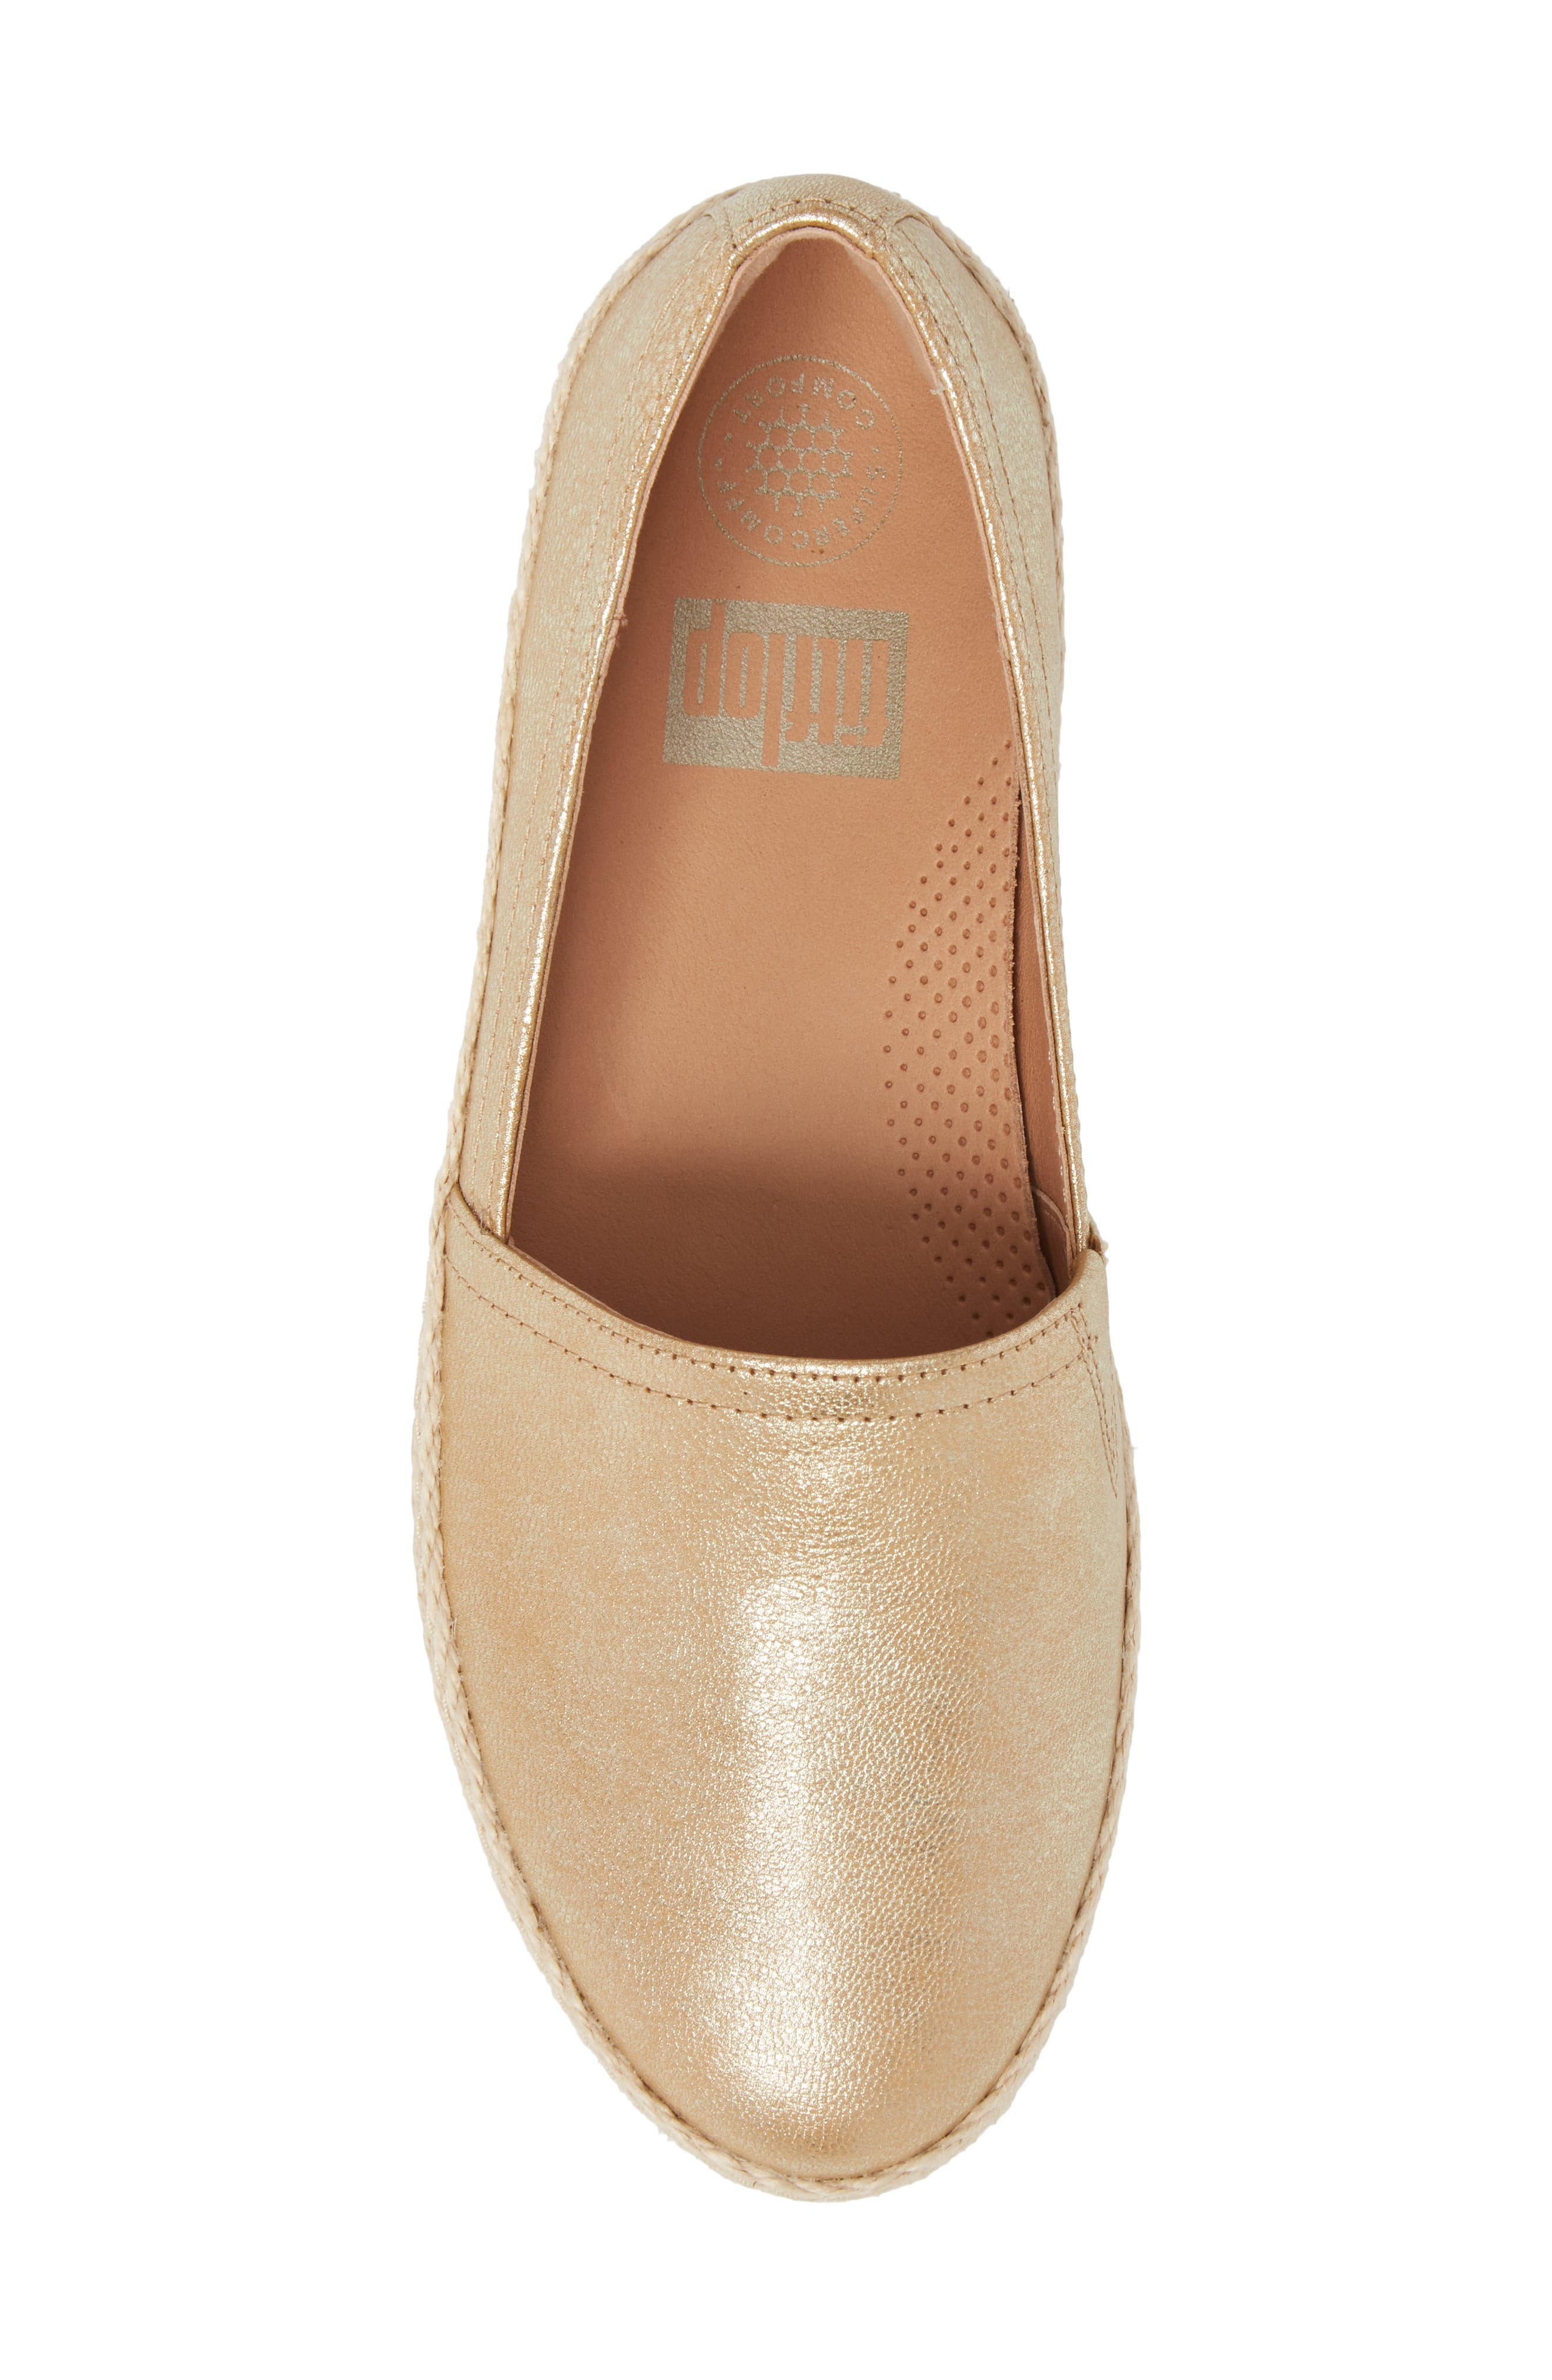 Casa Loafer,                             Alternate thumbnail 5, color,                             METALLIC GOLD LEATHER